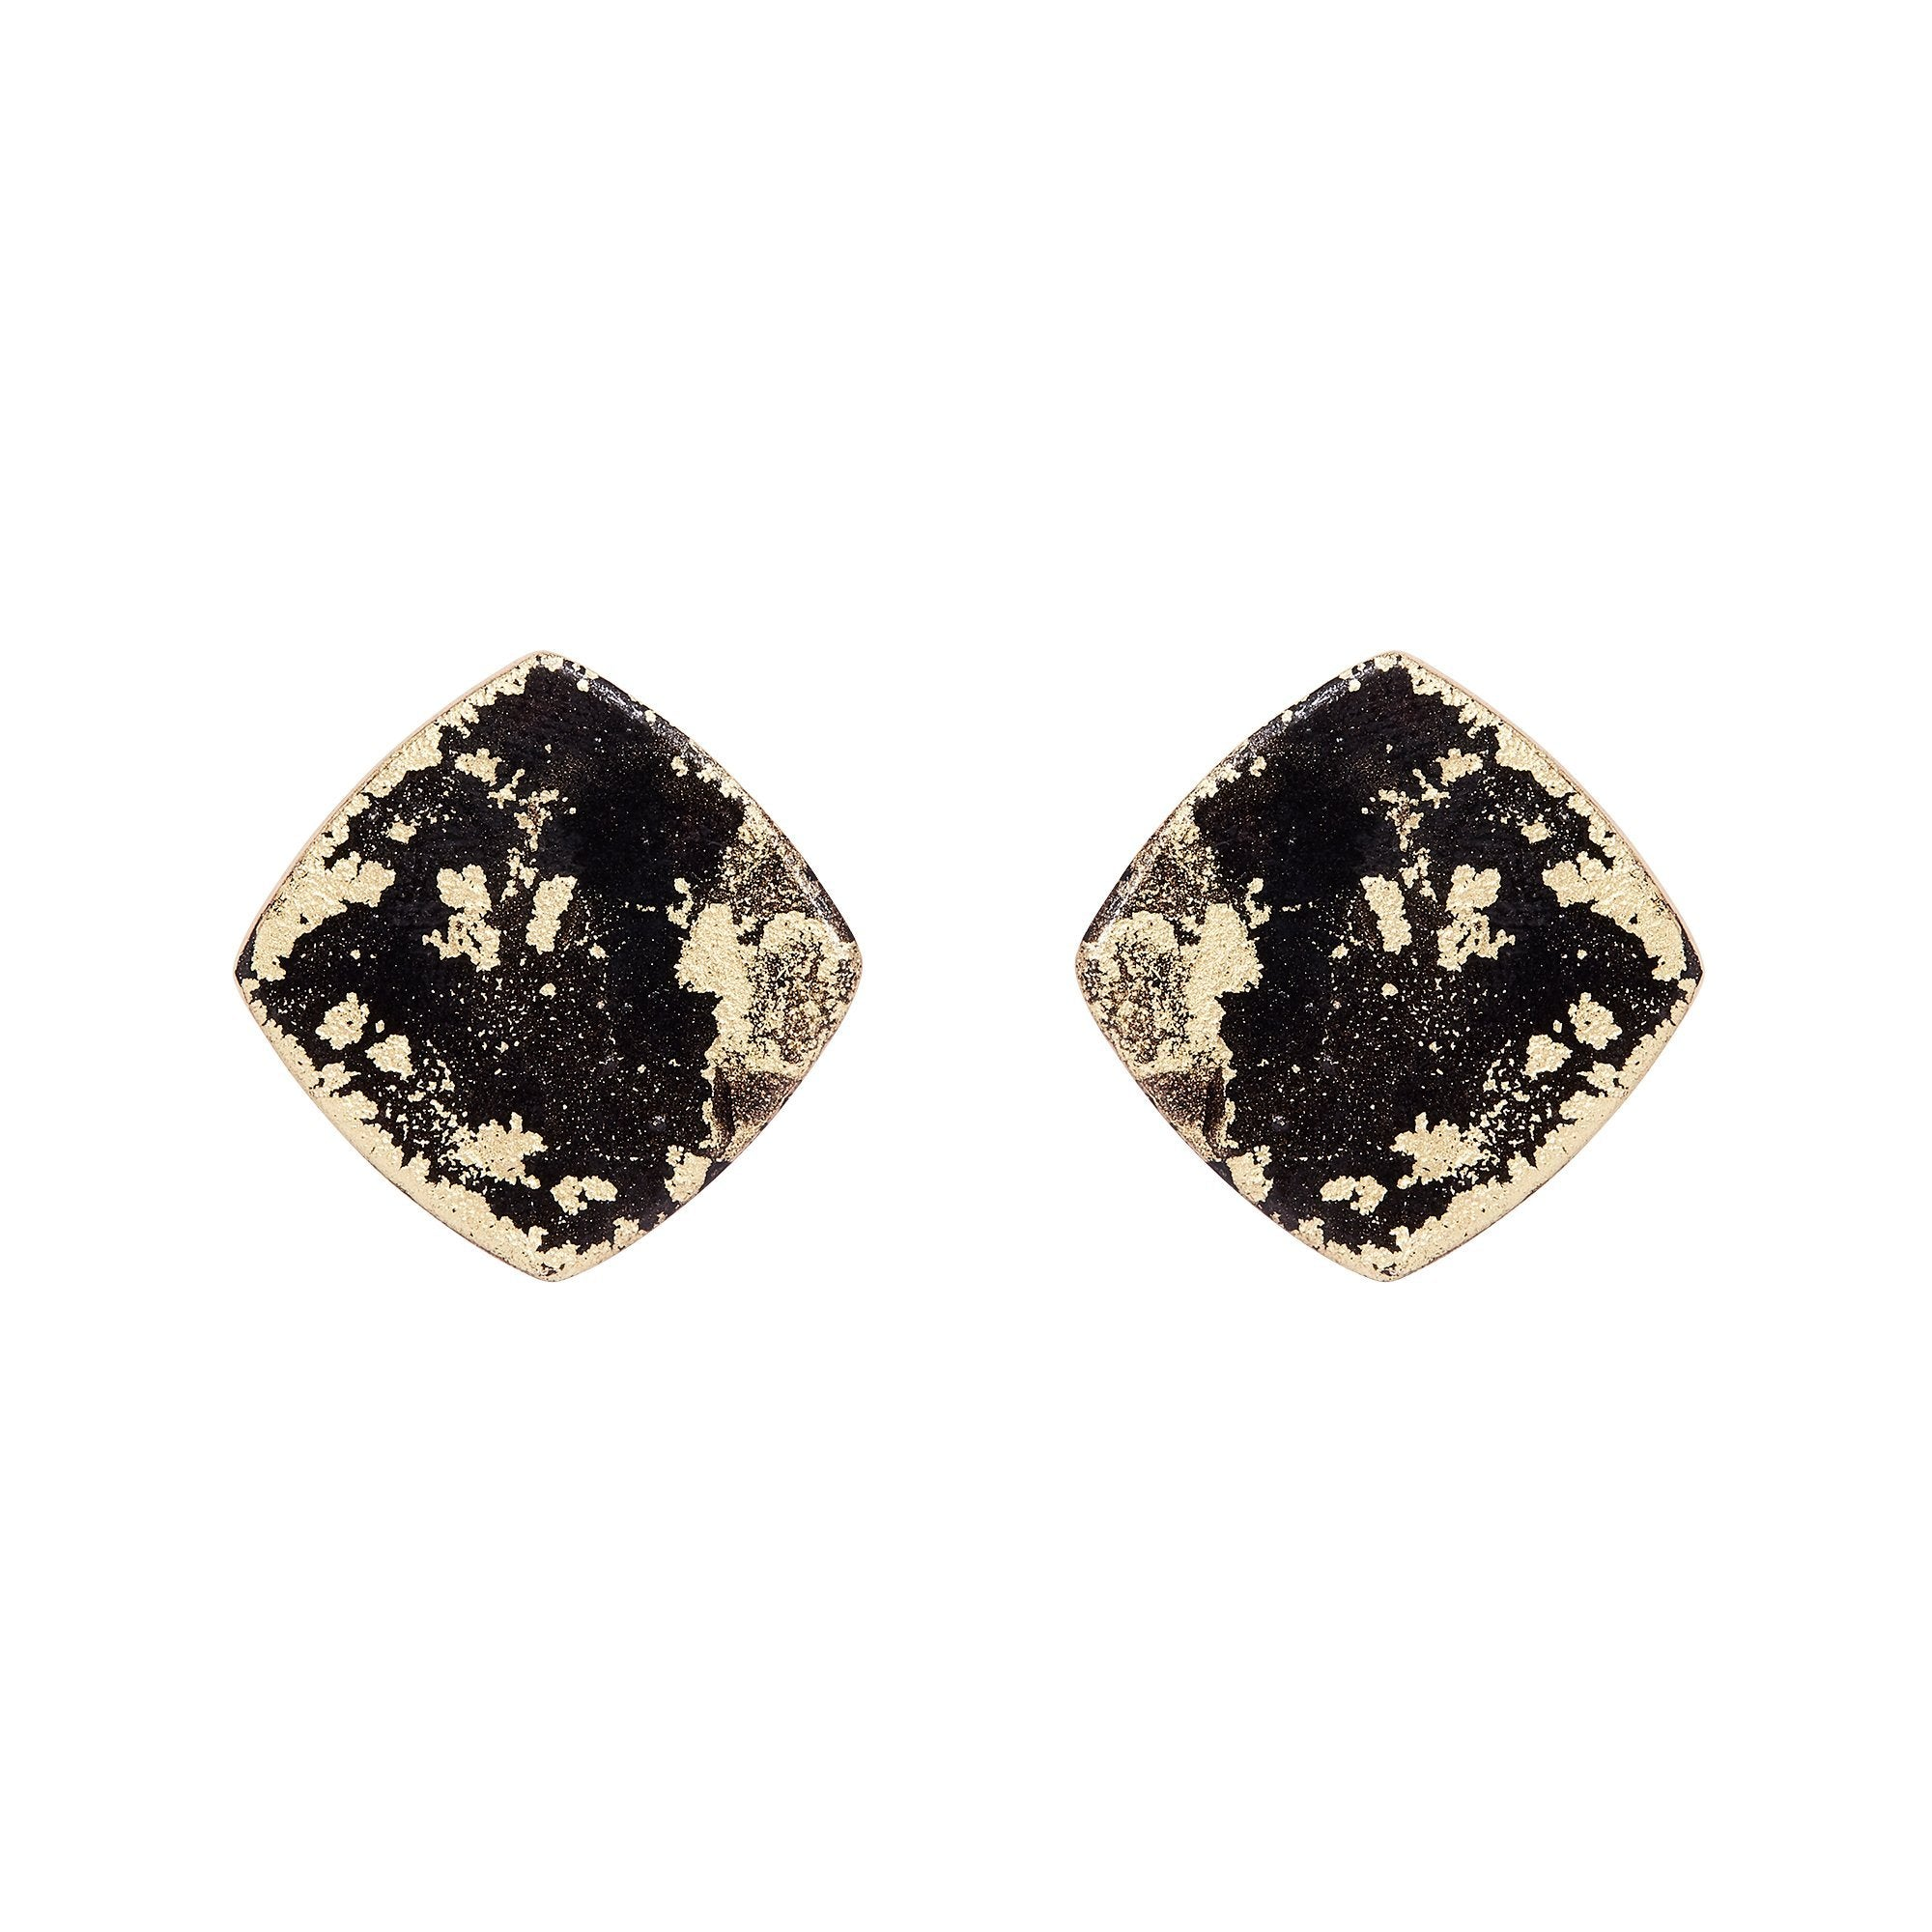 Gold Mini Diamond Earrings - Available in More Colors